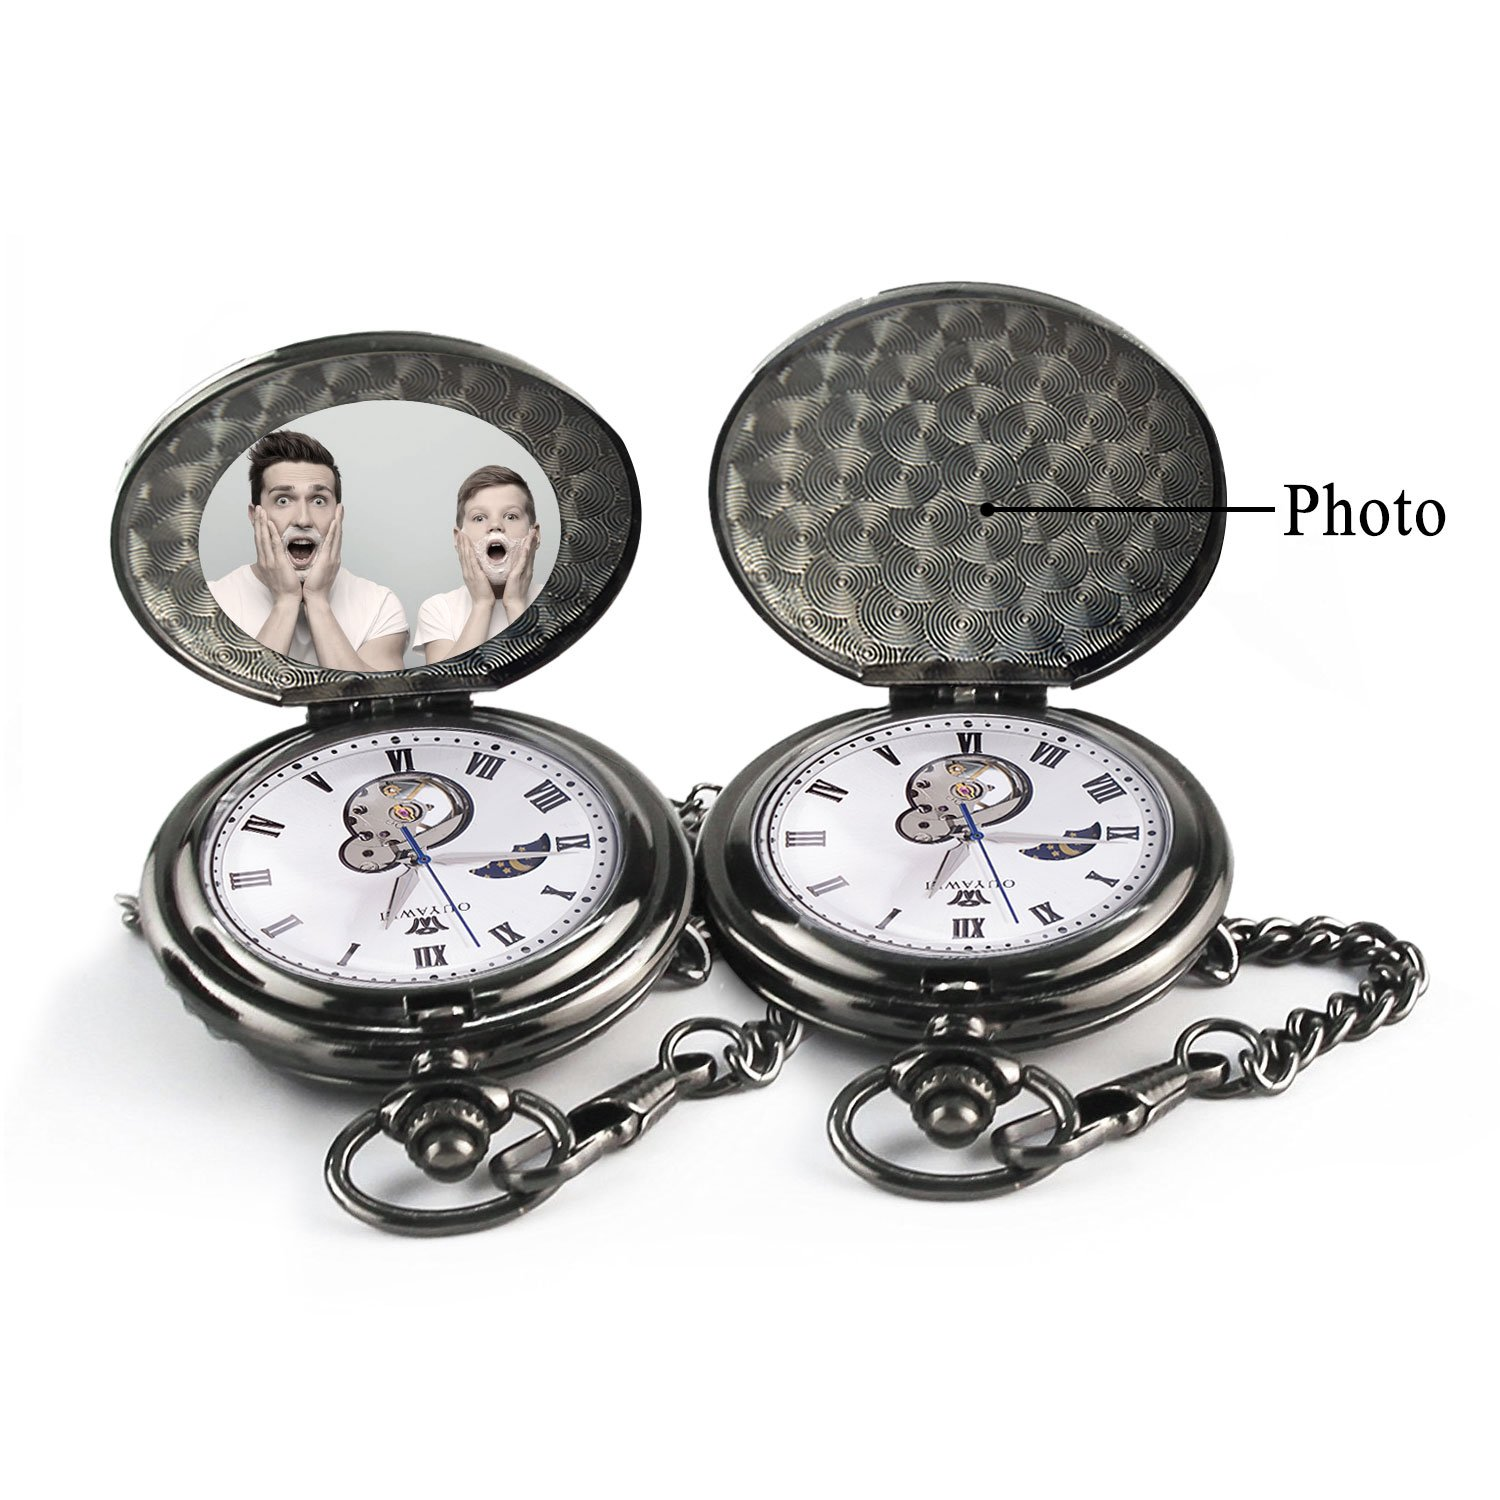 To My Son Love Dad Pocket Watch for Son Gifts from Dad (Love Dad Black Mechanical Pocket Watch) by Ginasy (Image #2)